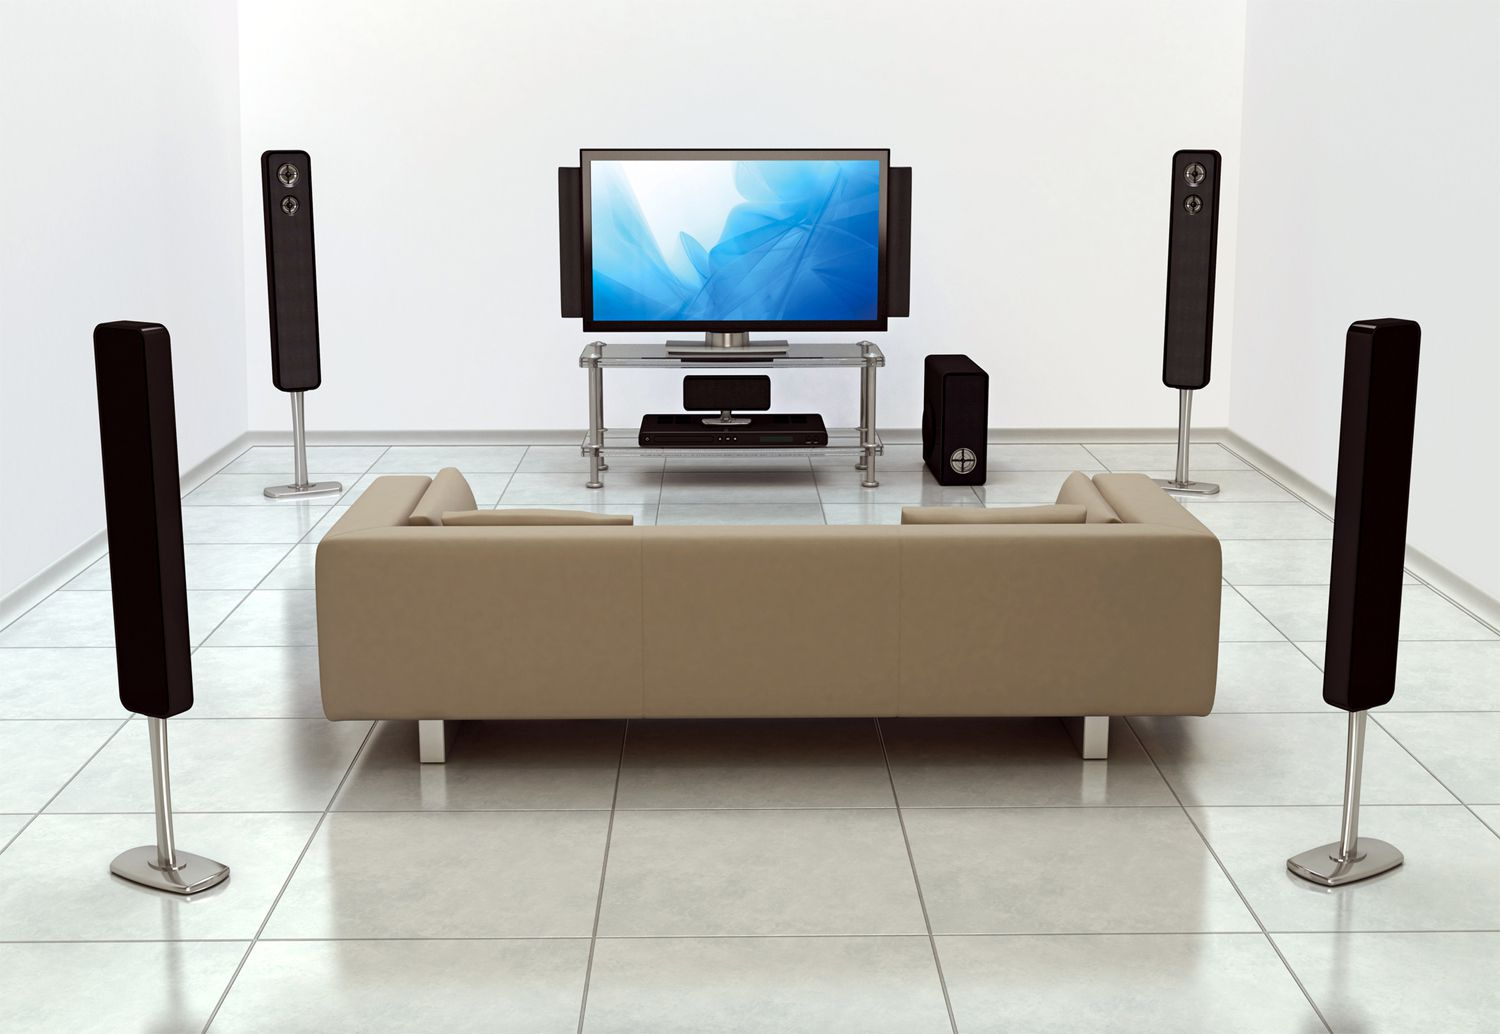 hight resolution of home theater surround sound setup